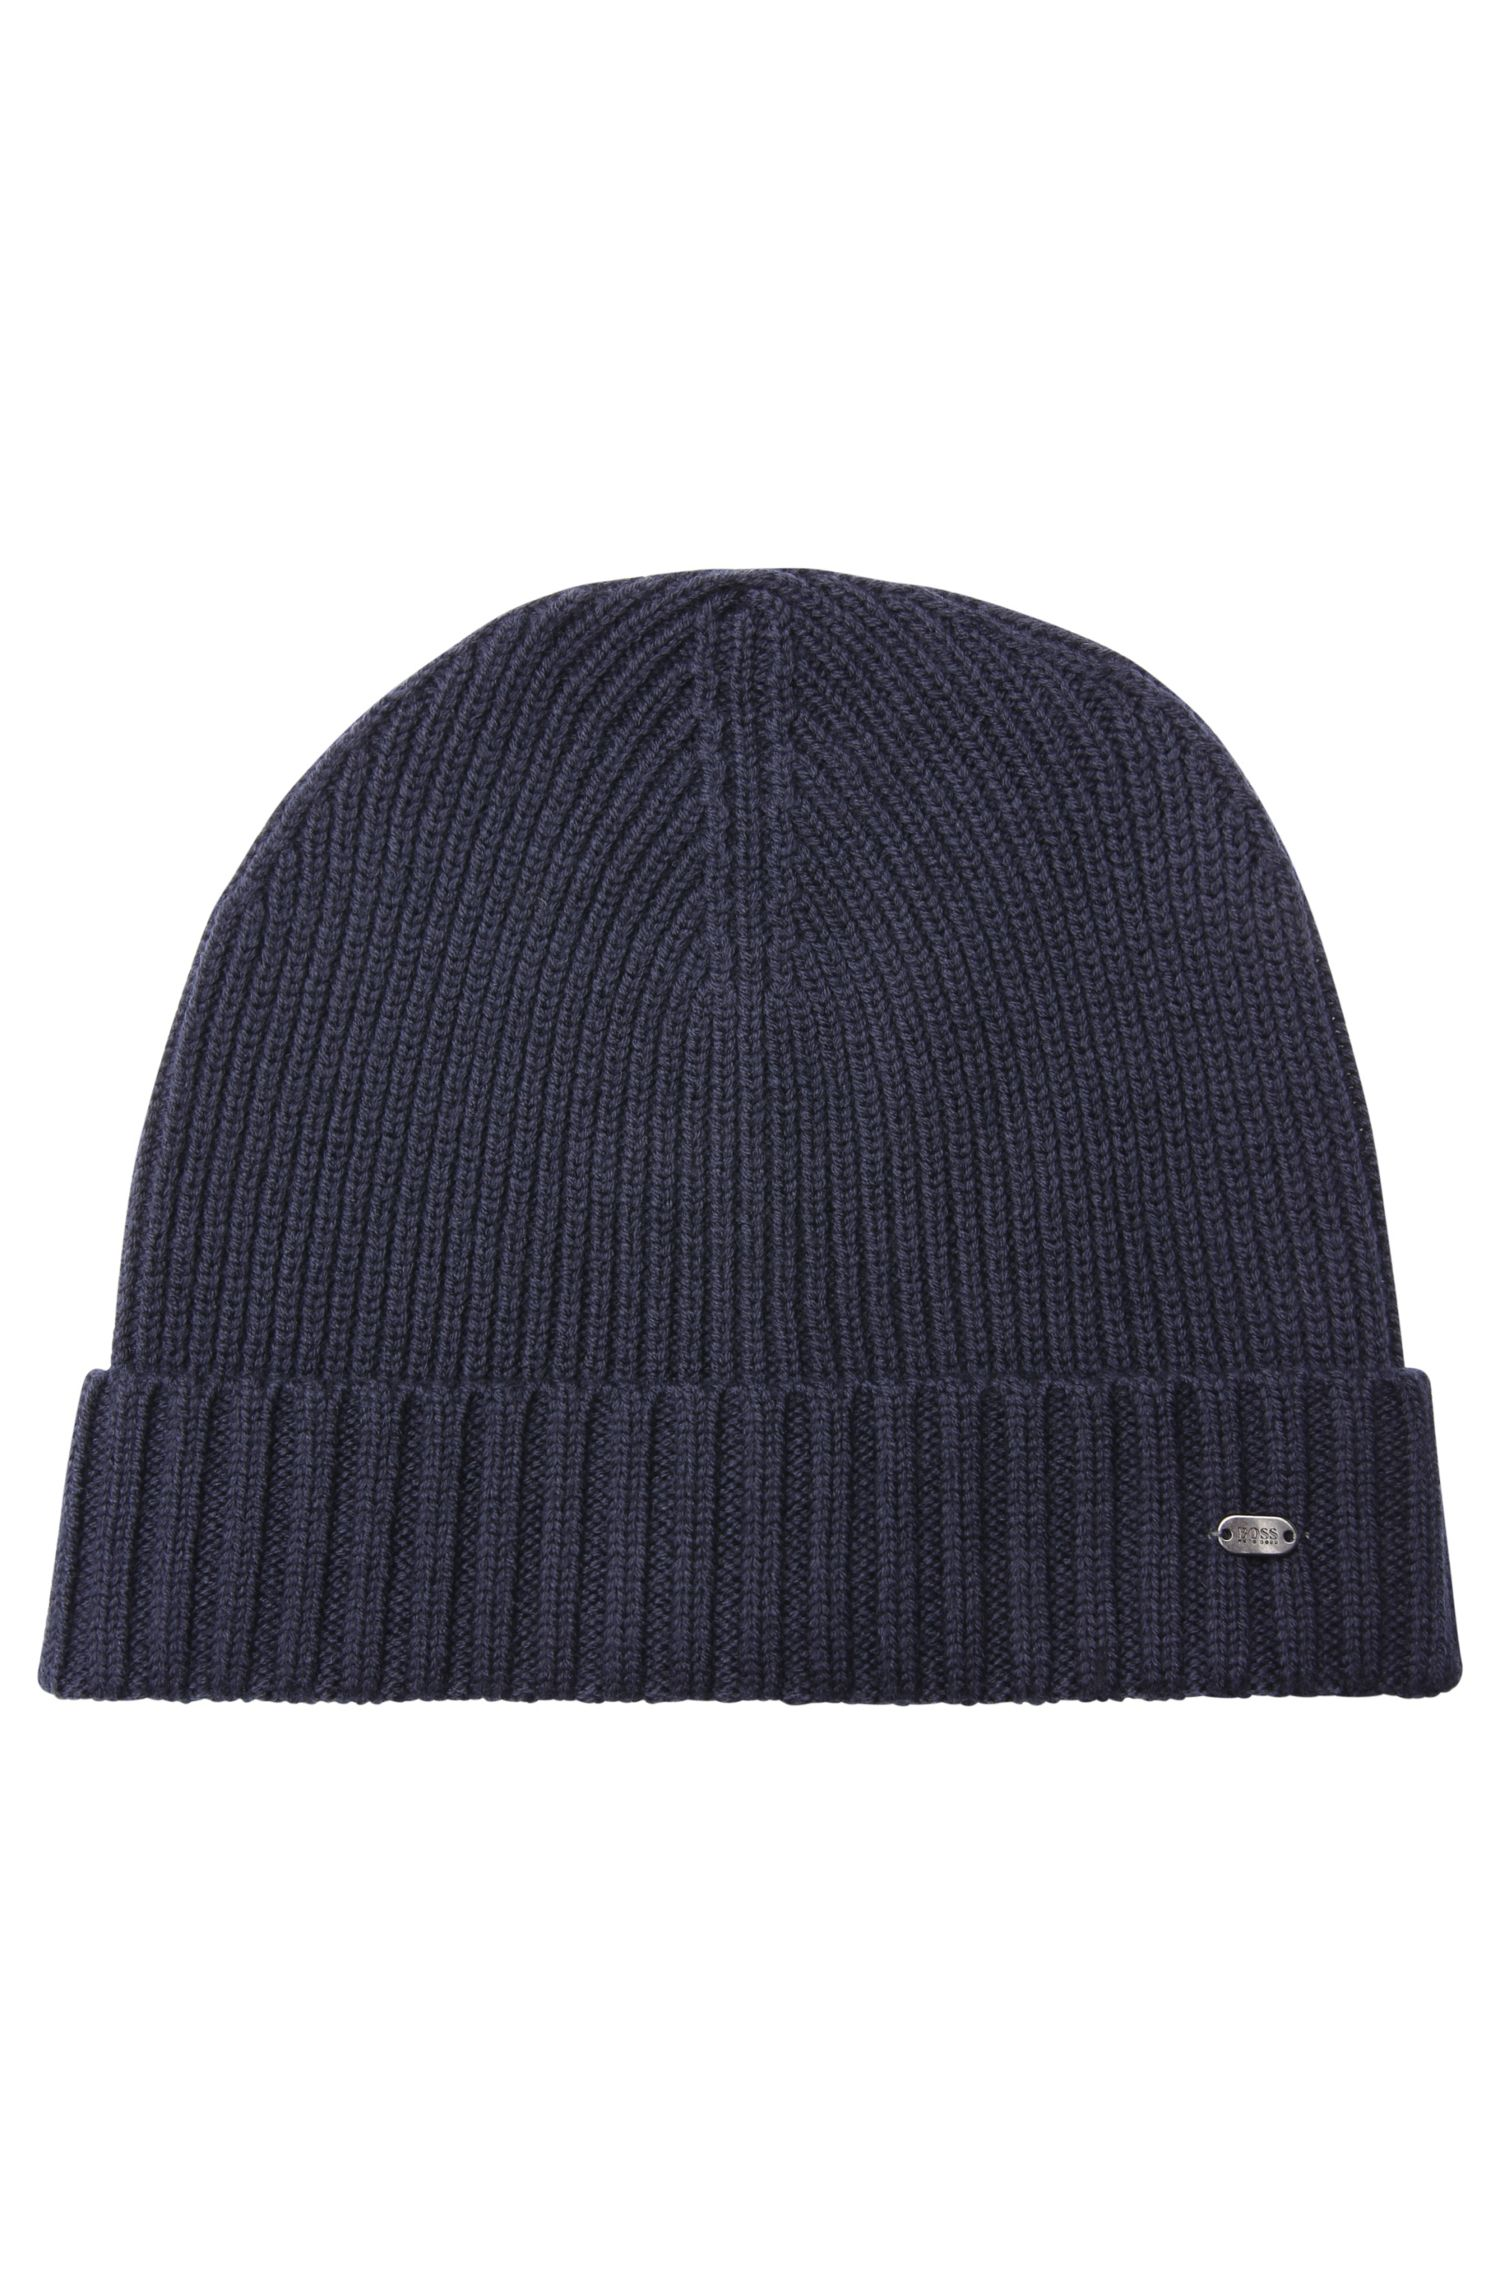 Virgin Wool Beanie | C-Fati